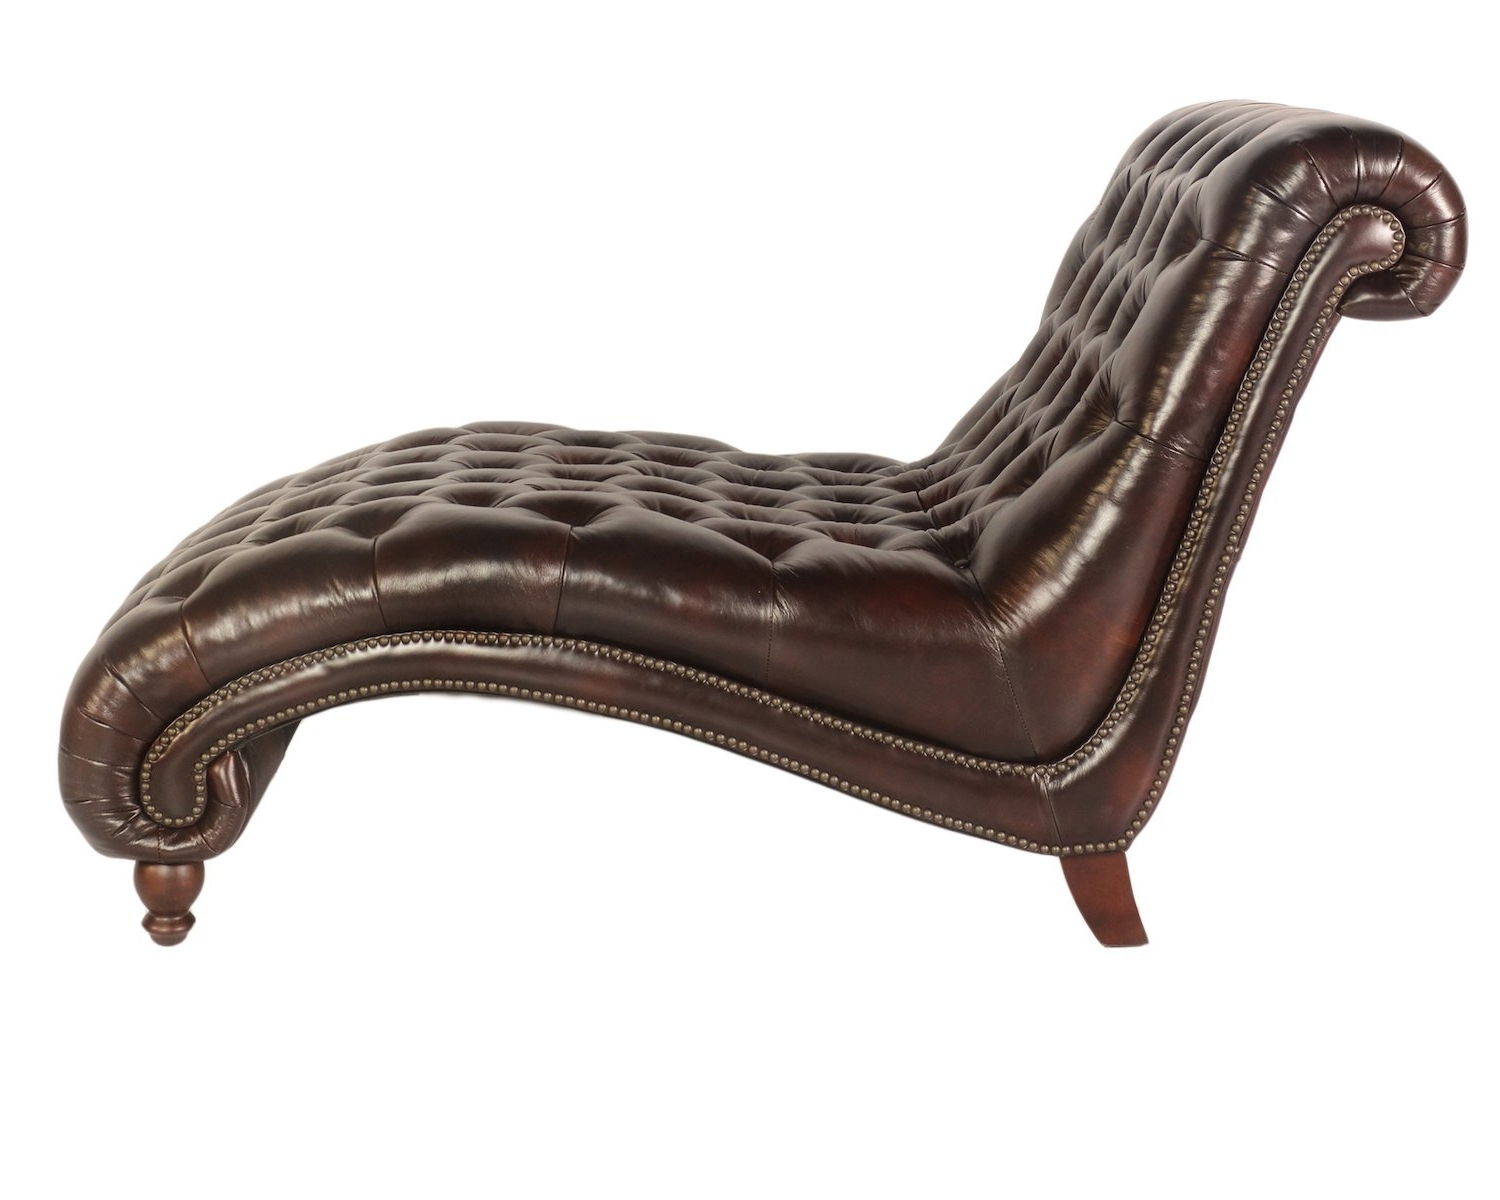 Amazon: Lazzaro C3988 Double Chaise In Vintage Toberlone Regarding Fashionable Chaise Lounge Chairs Made In Usa (View 2 of 15)